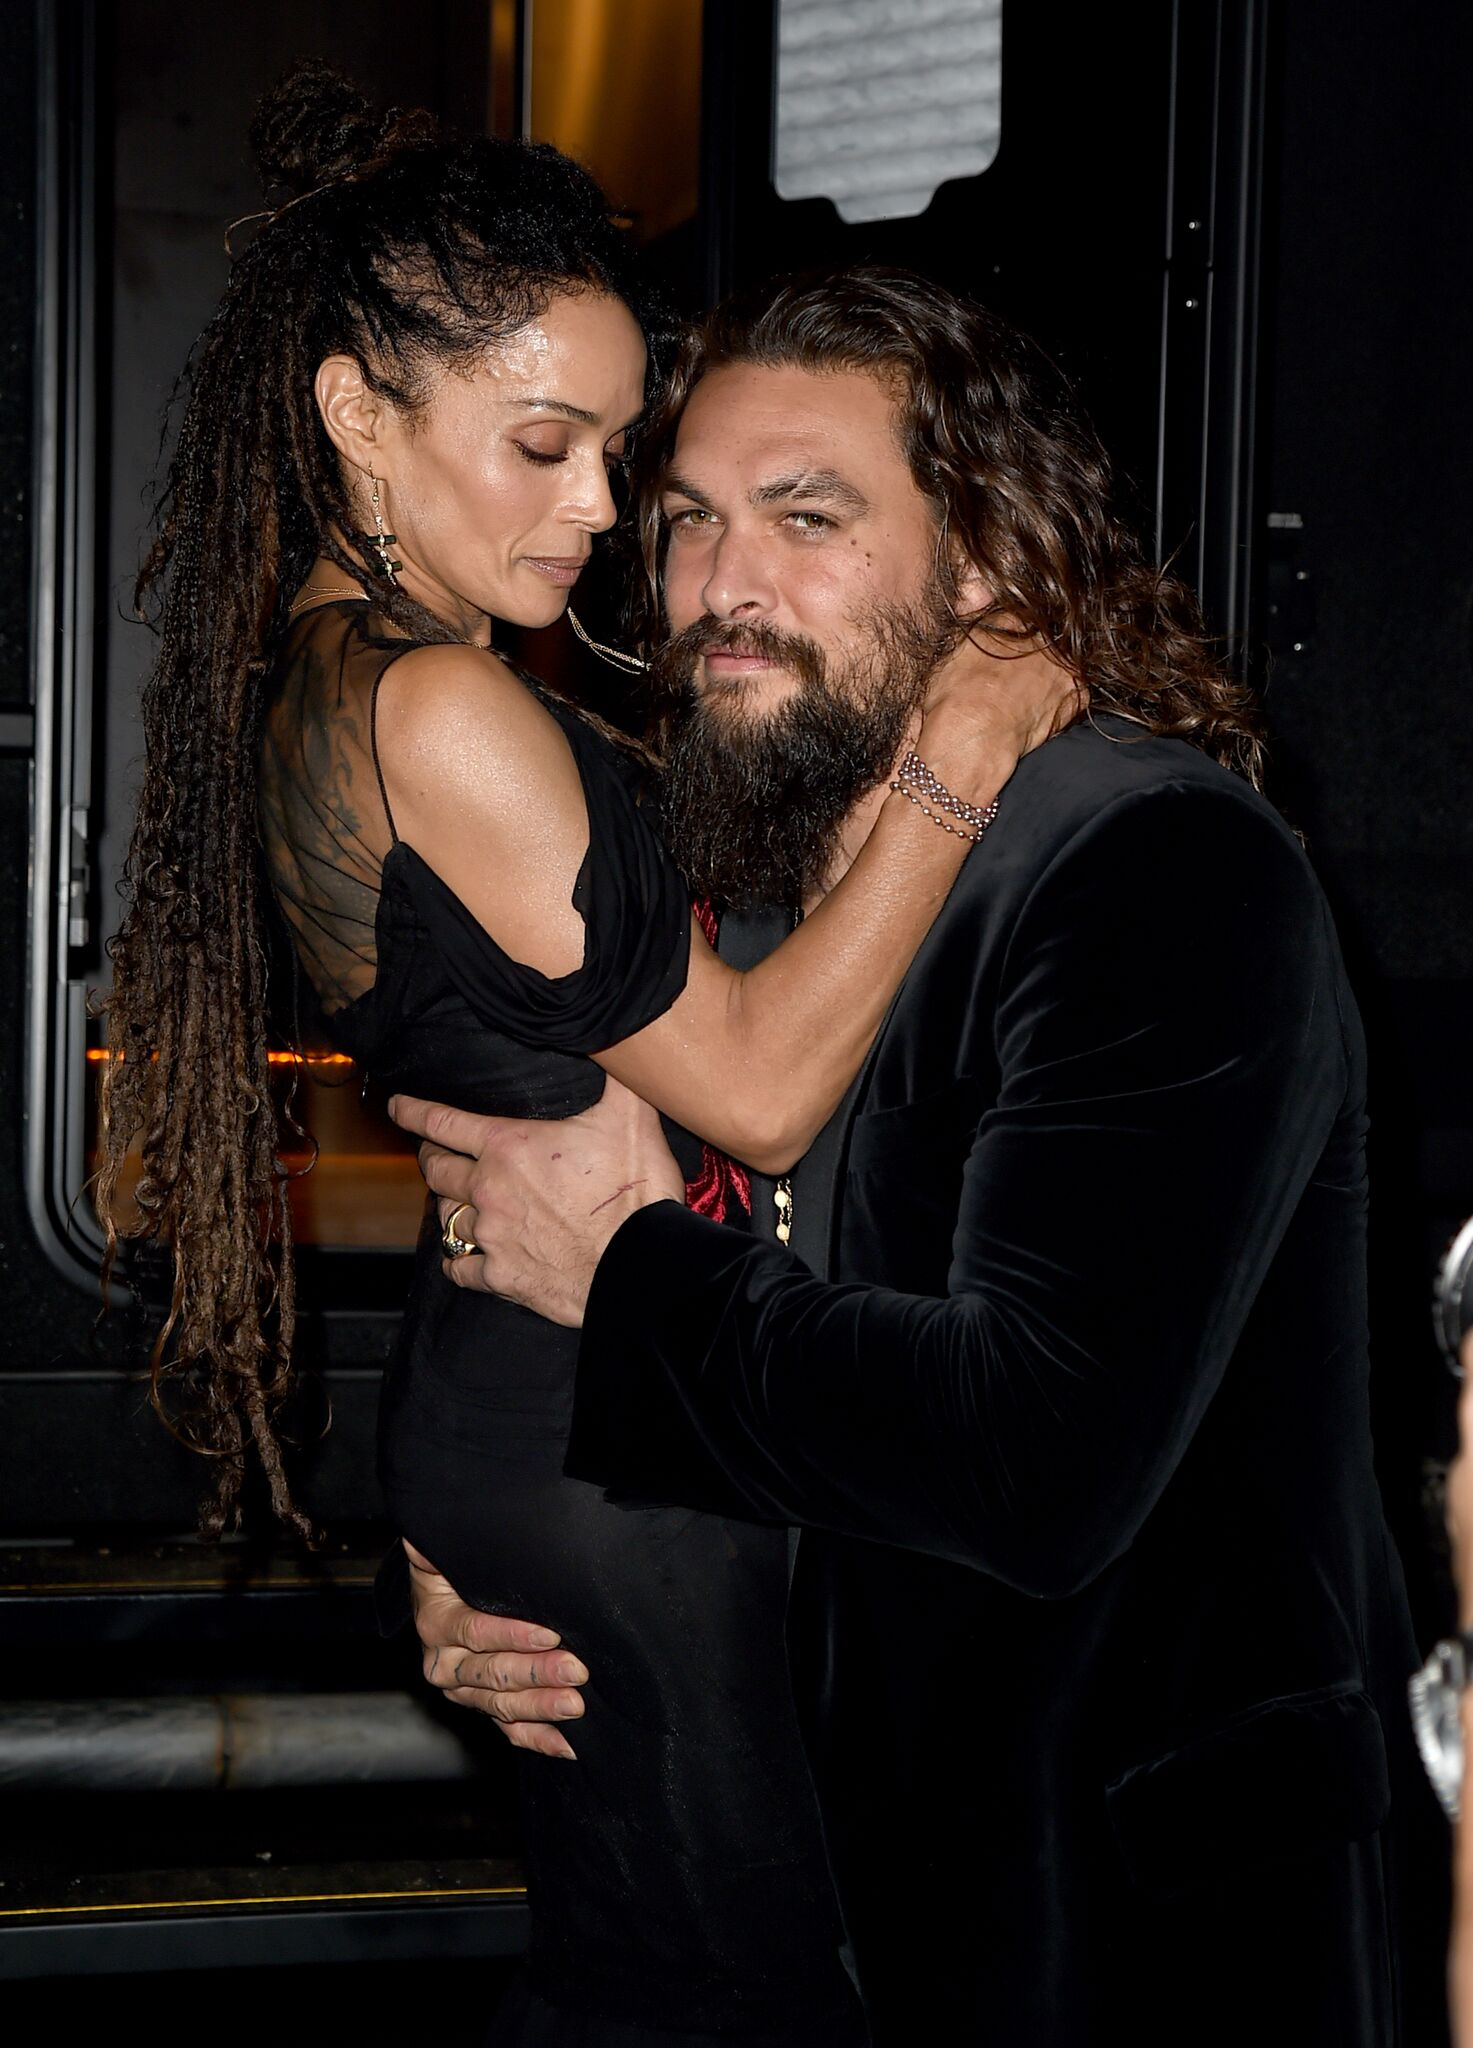 """Lisa Bonet (L) and Jason Momoa attend the premiere of Warner Bros. Pictures' """"Aquaman"""" 